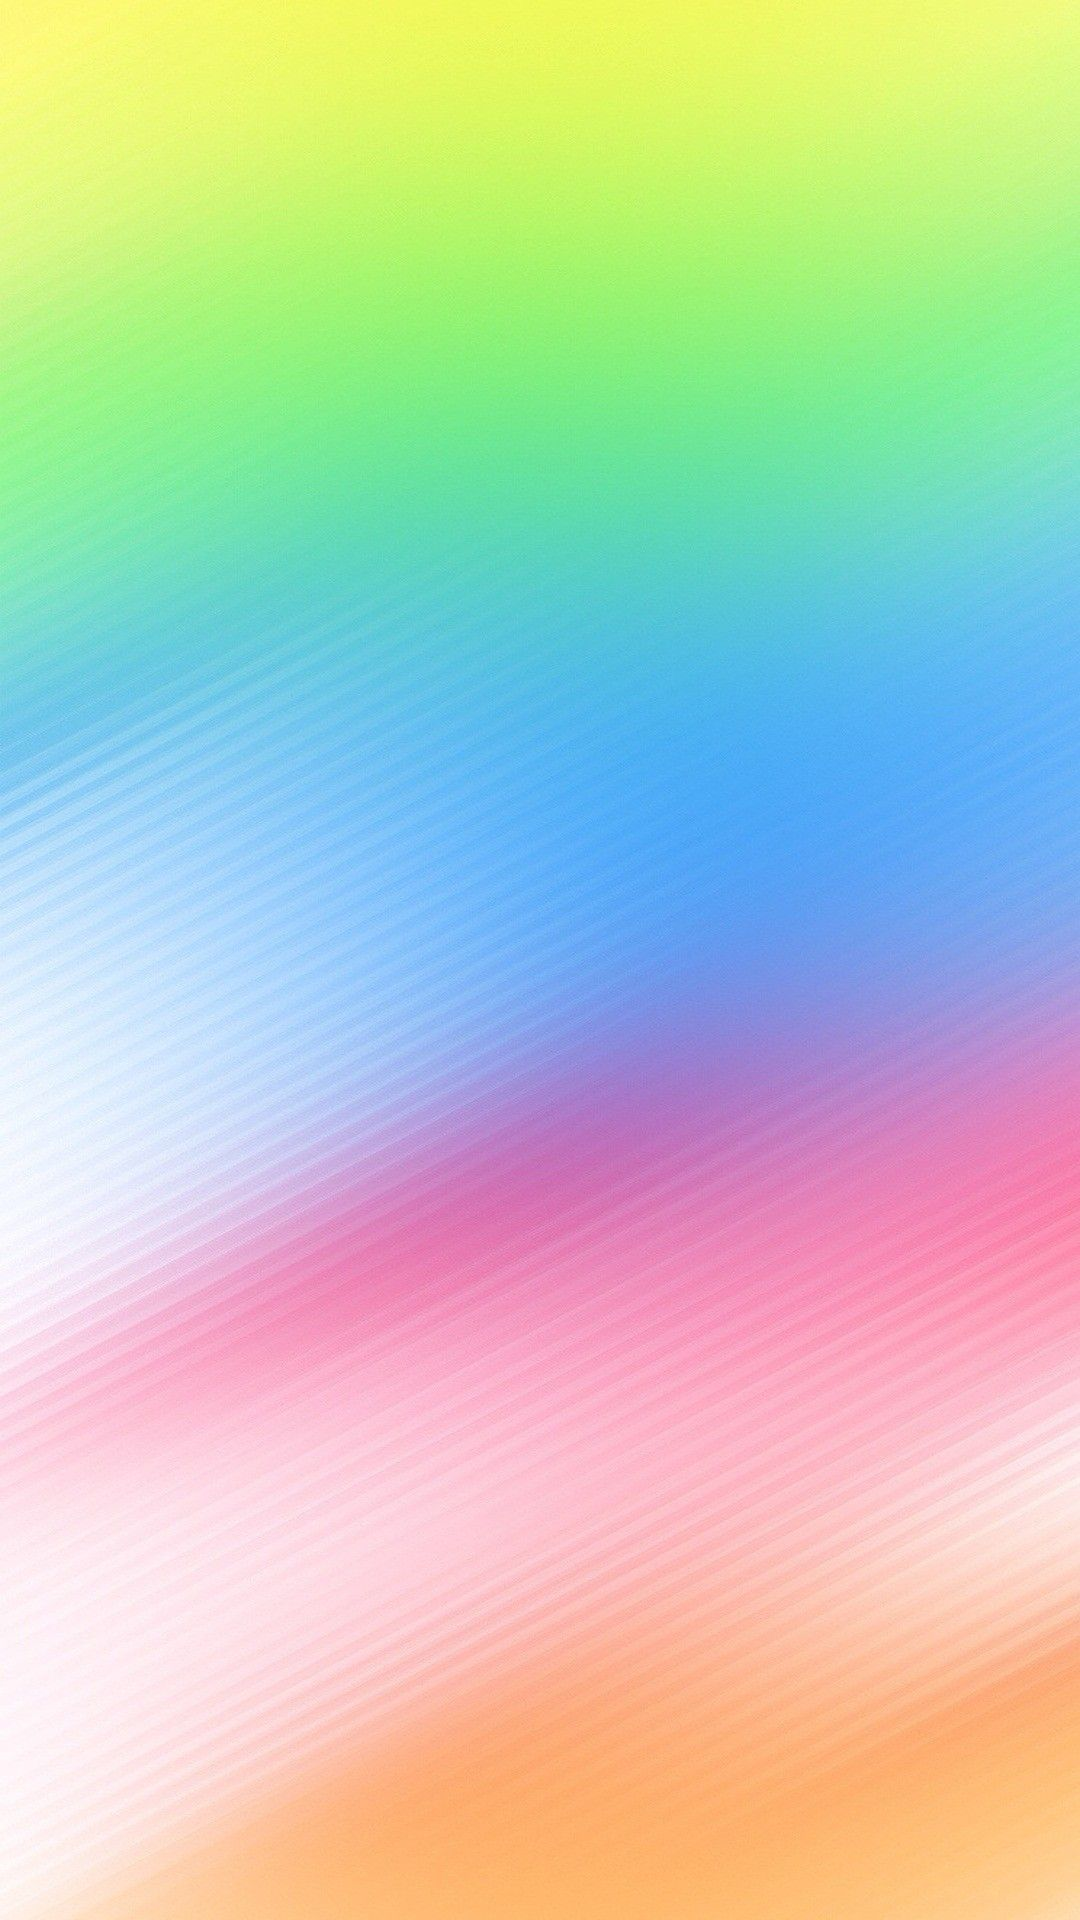 64 Ios Dynamic Wallpapers On Wallpaperplay Android Wallpaper